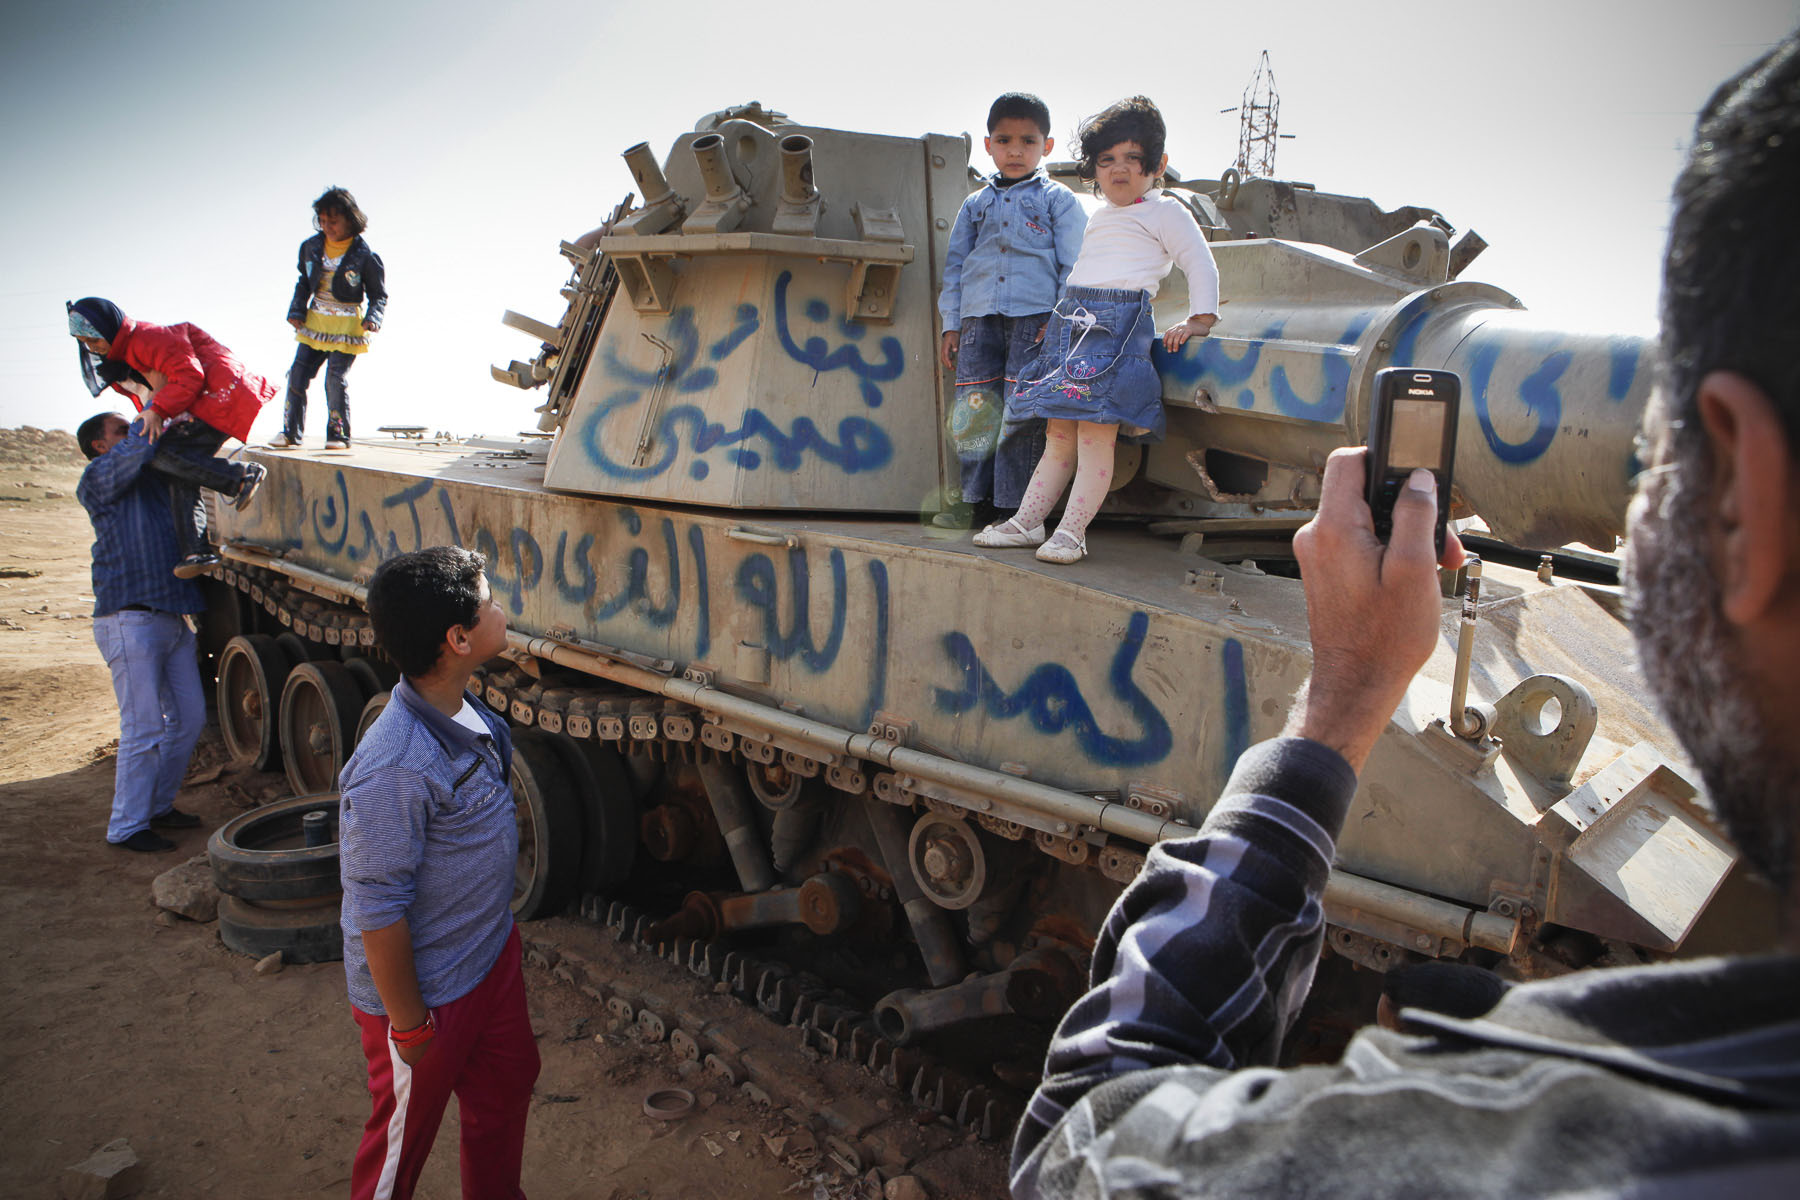 Libyan families by a destroyed tank near the town of Benghazi in April 2011